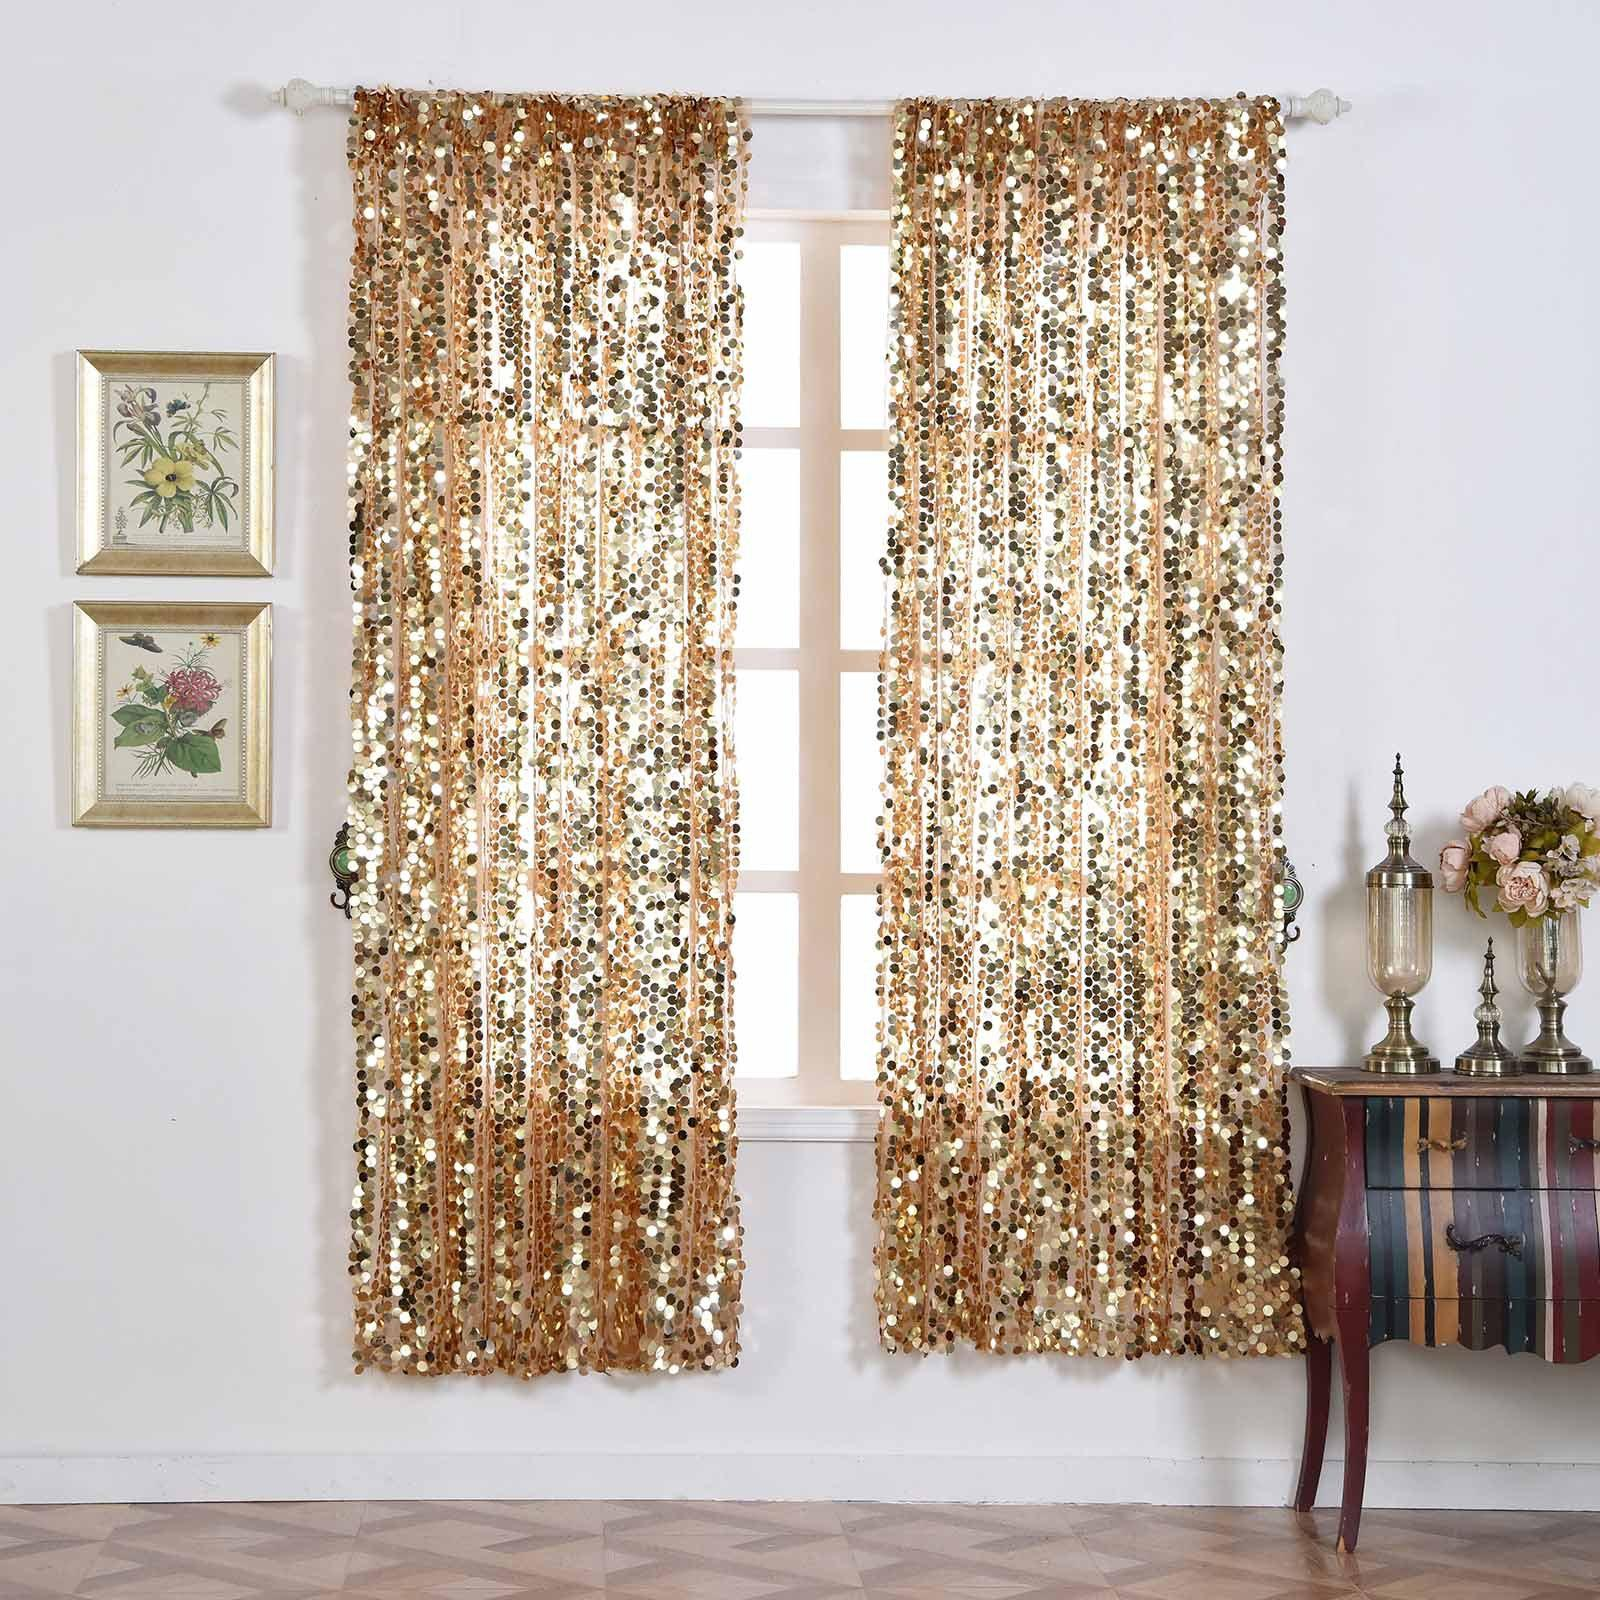 Big Payette Sequin Curtains 52x84 Quot Gold Pack Of 2 Window